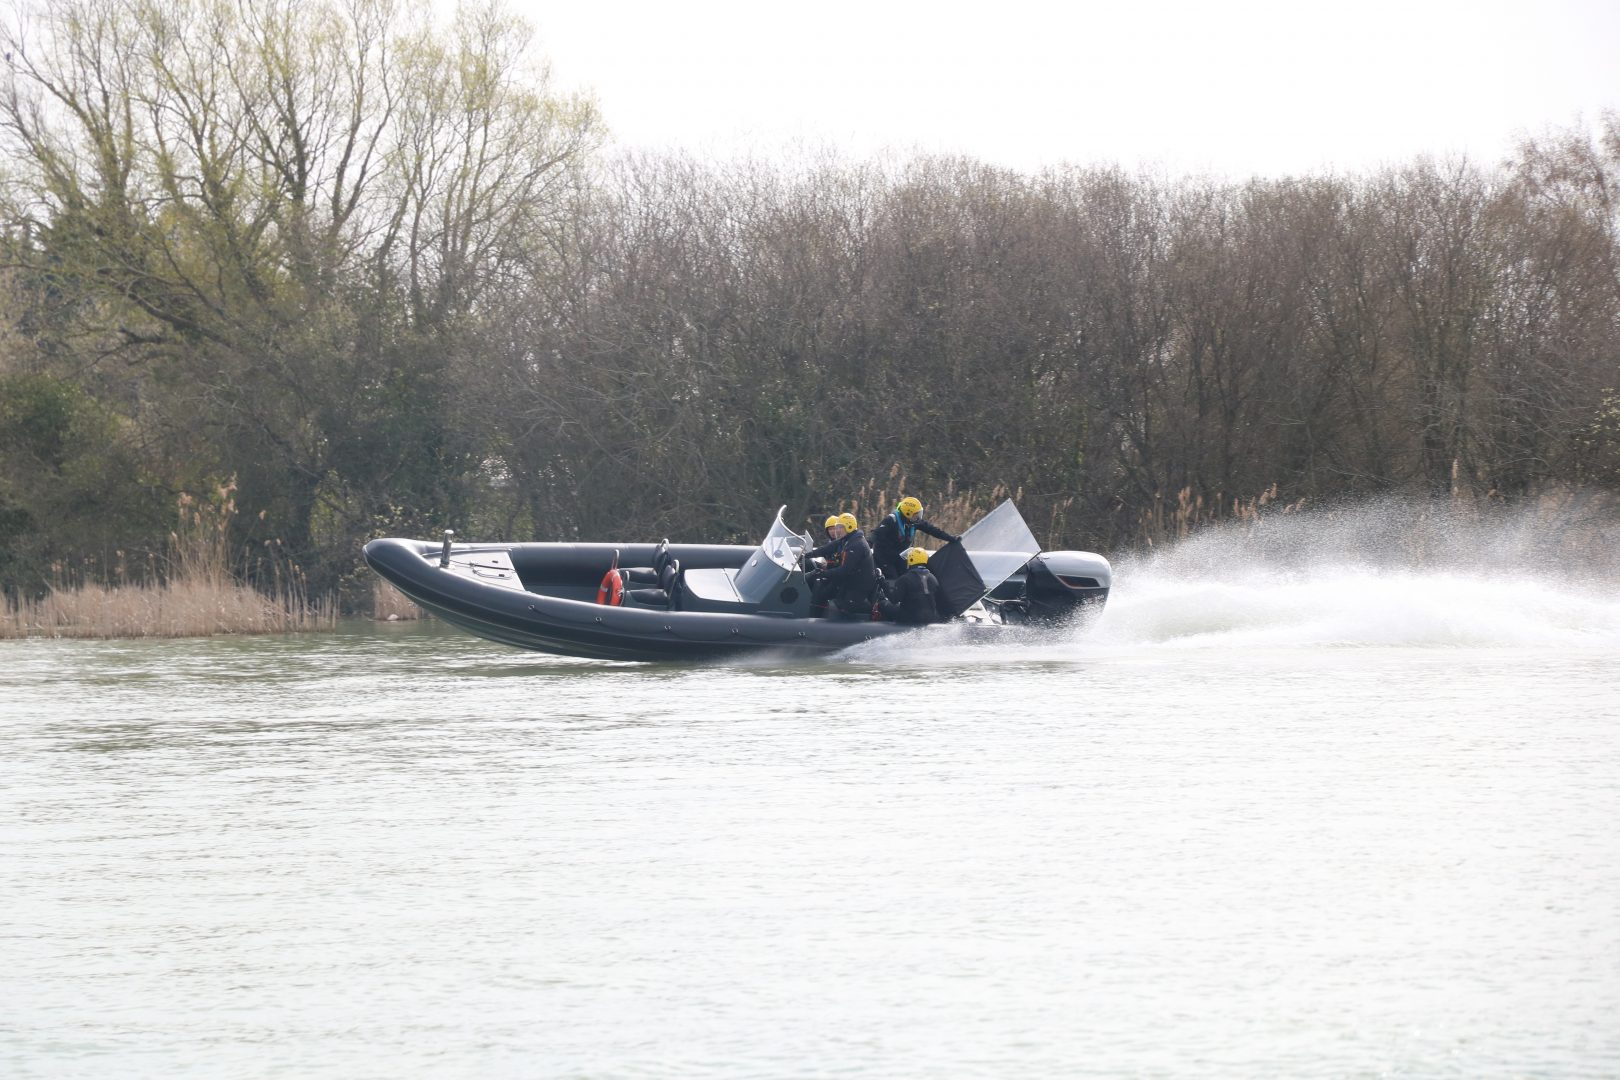 What affects boat speed?